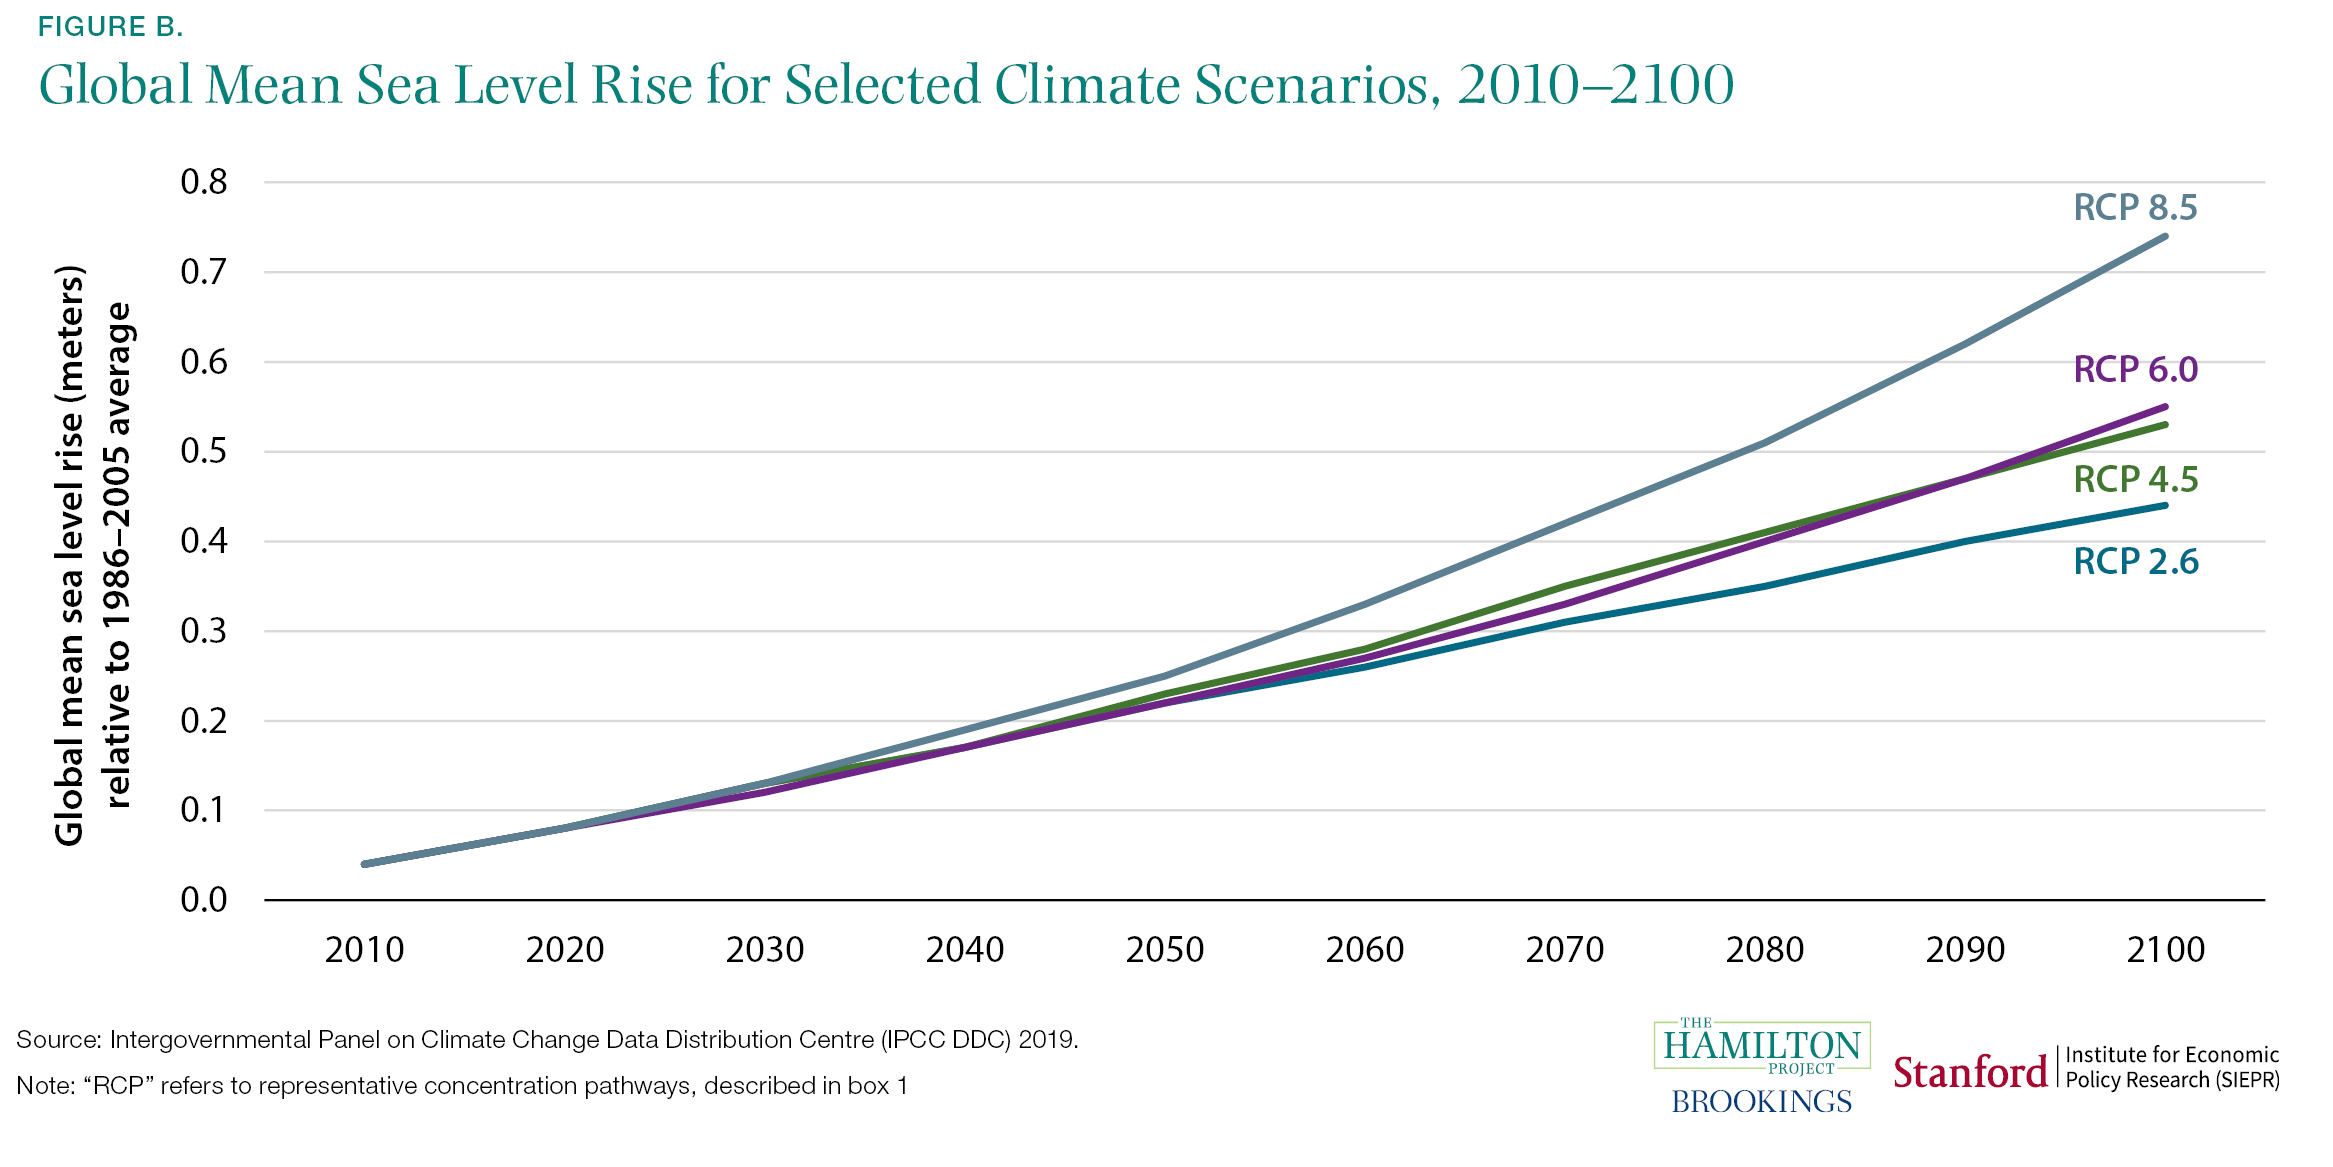 Global Mean Sea Level Rise for Selected Climate Scenarios